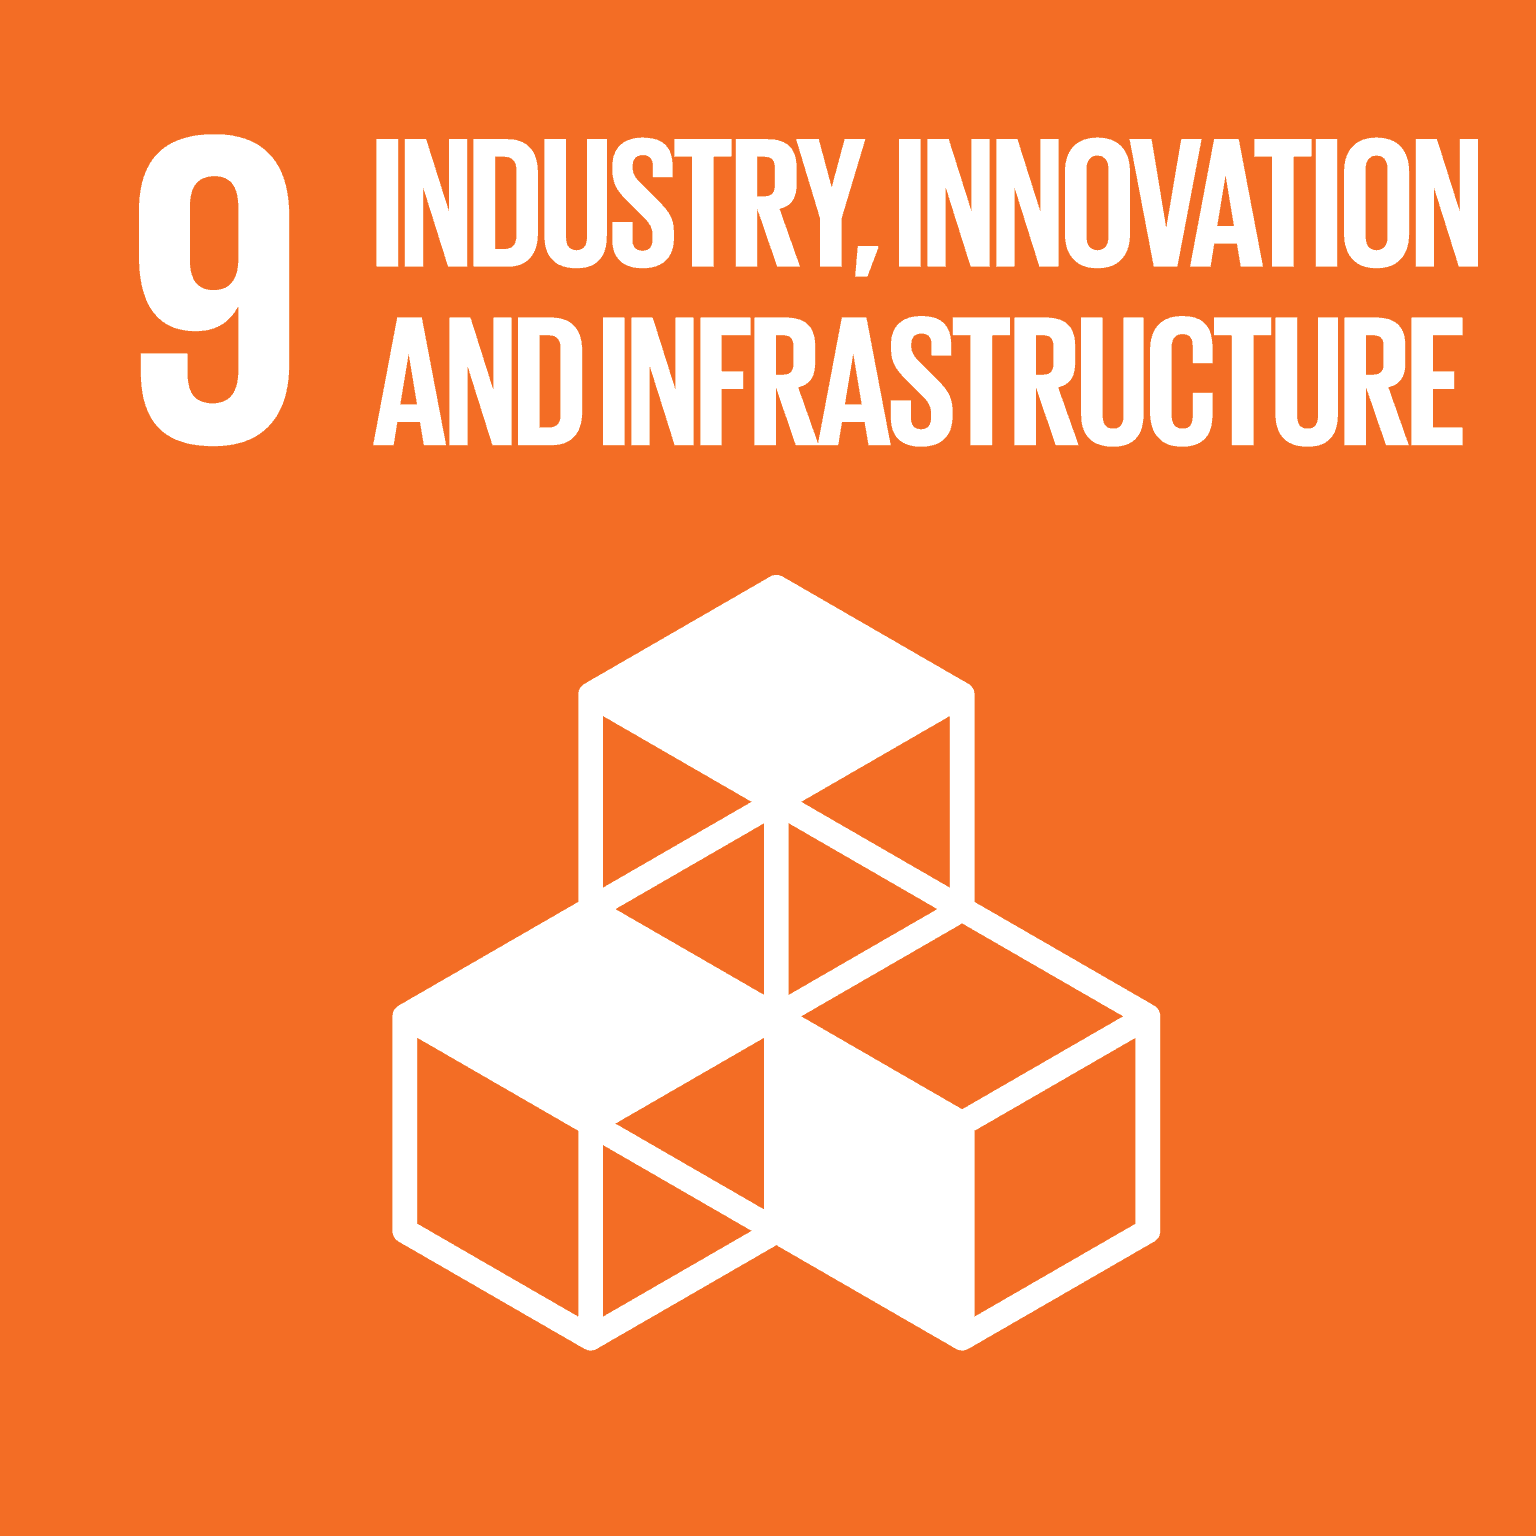 UN SDG Goal 9 - Industry, Innovation and Infrastructure